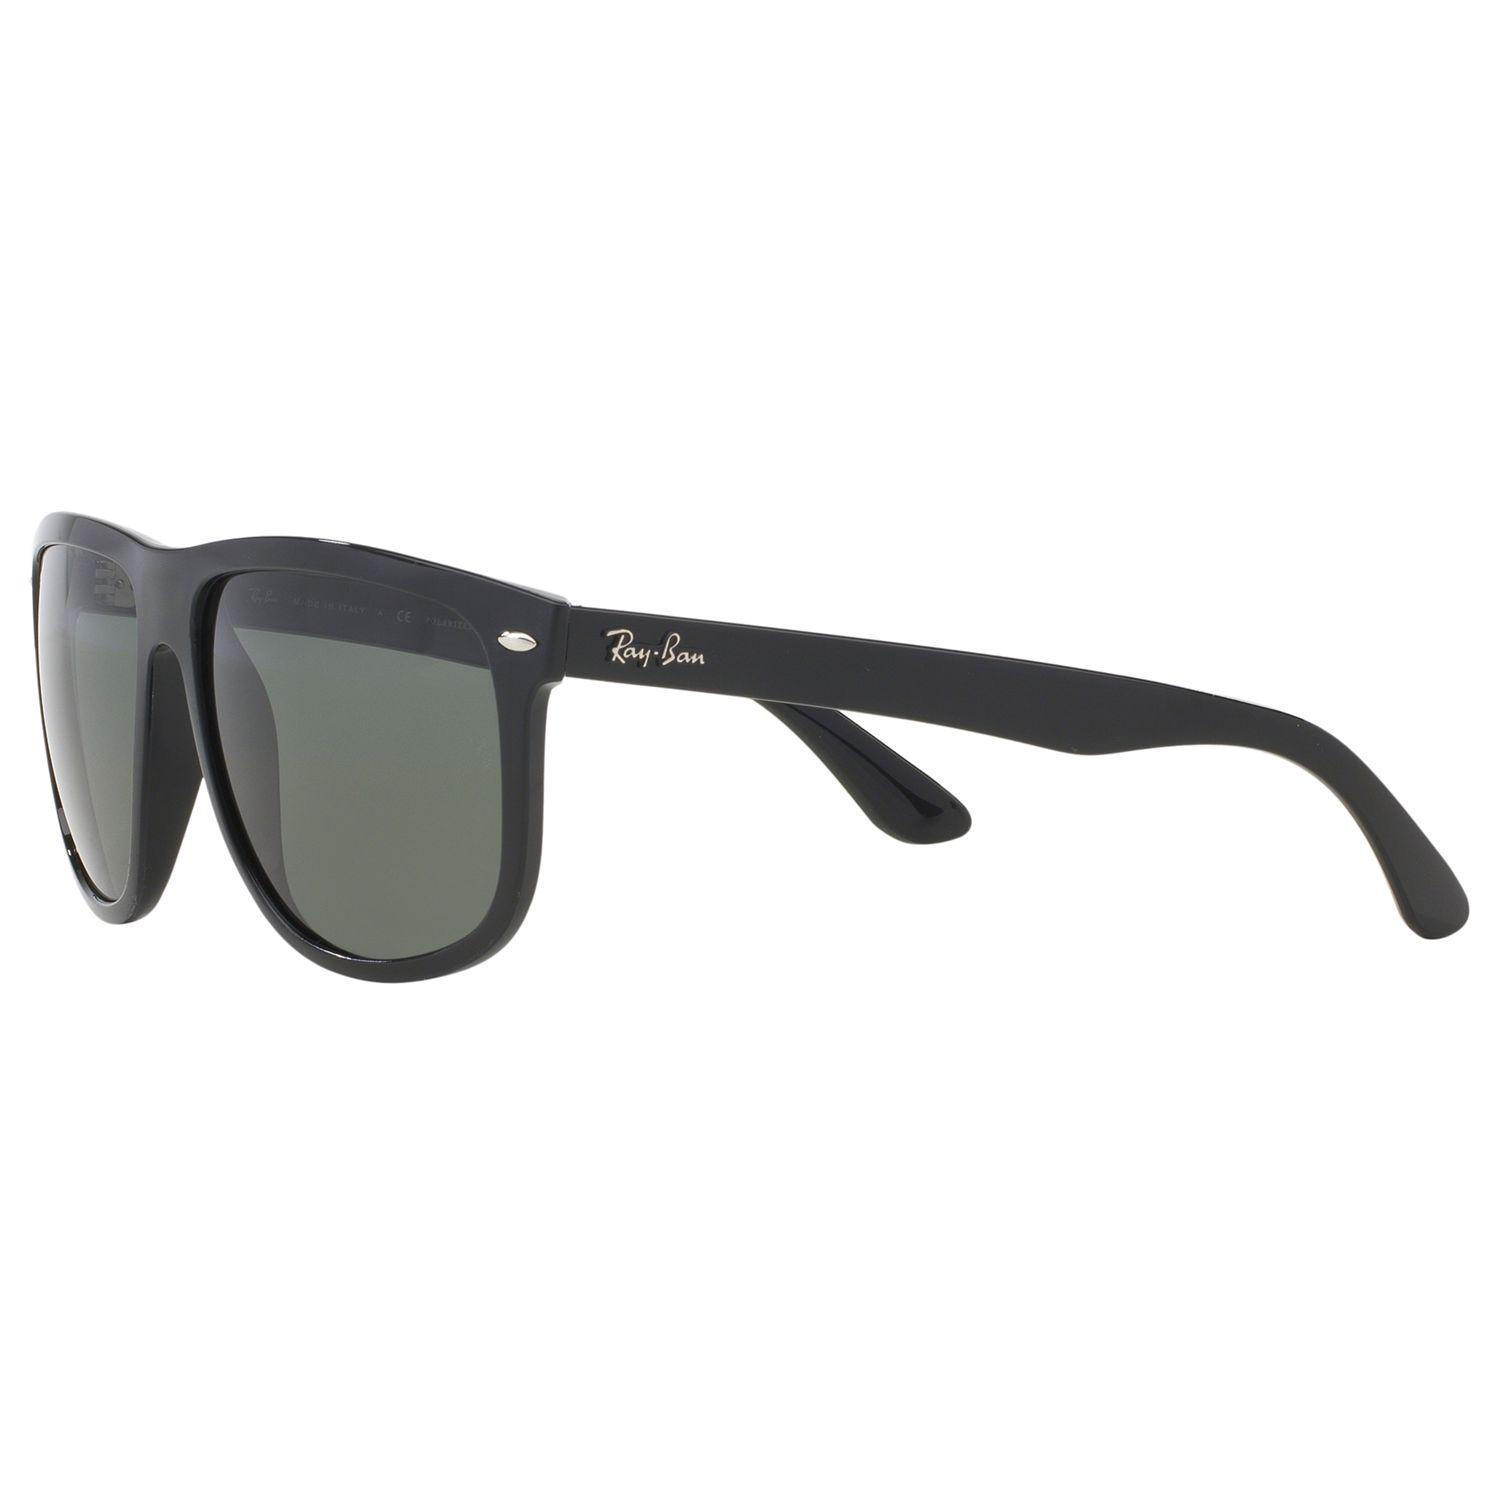 Ray-Ban Rb4147 Polarised Square Sunglasses in Black for Men